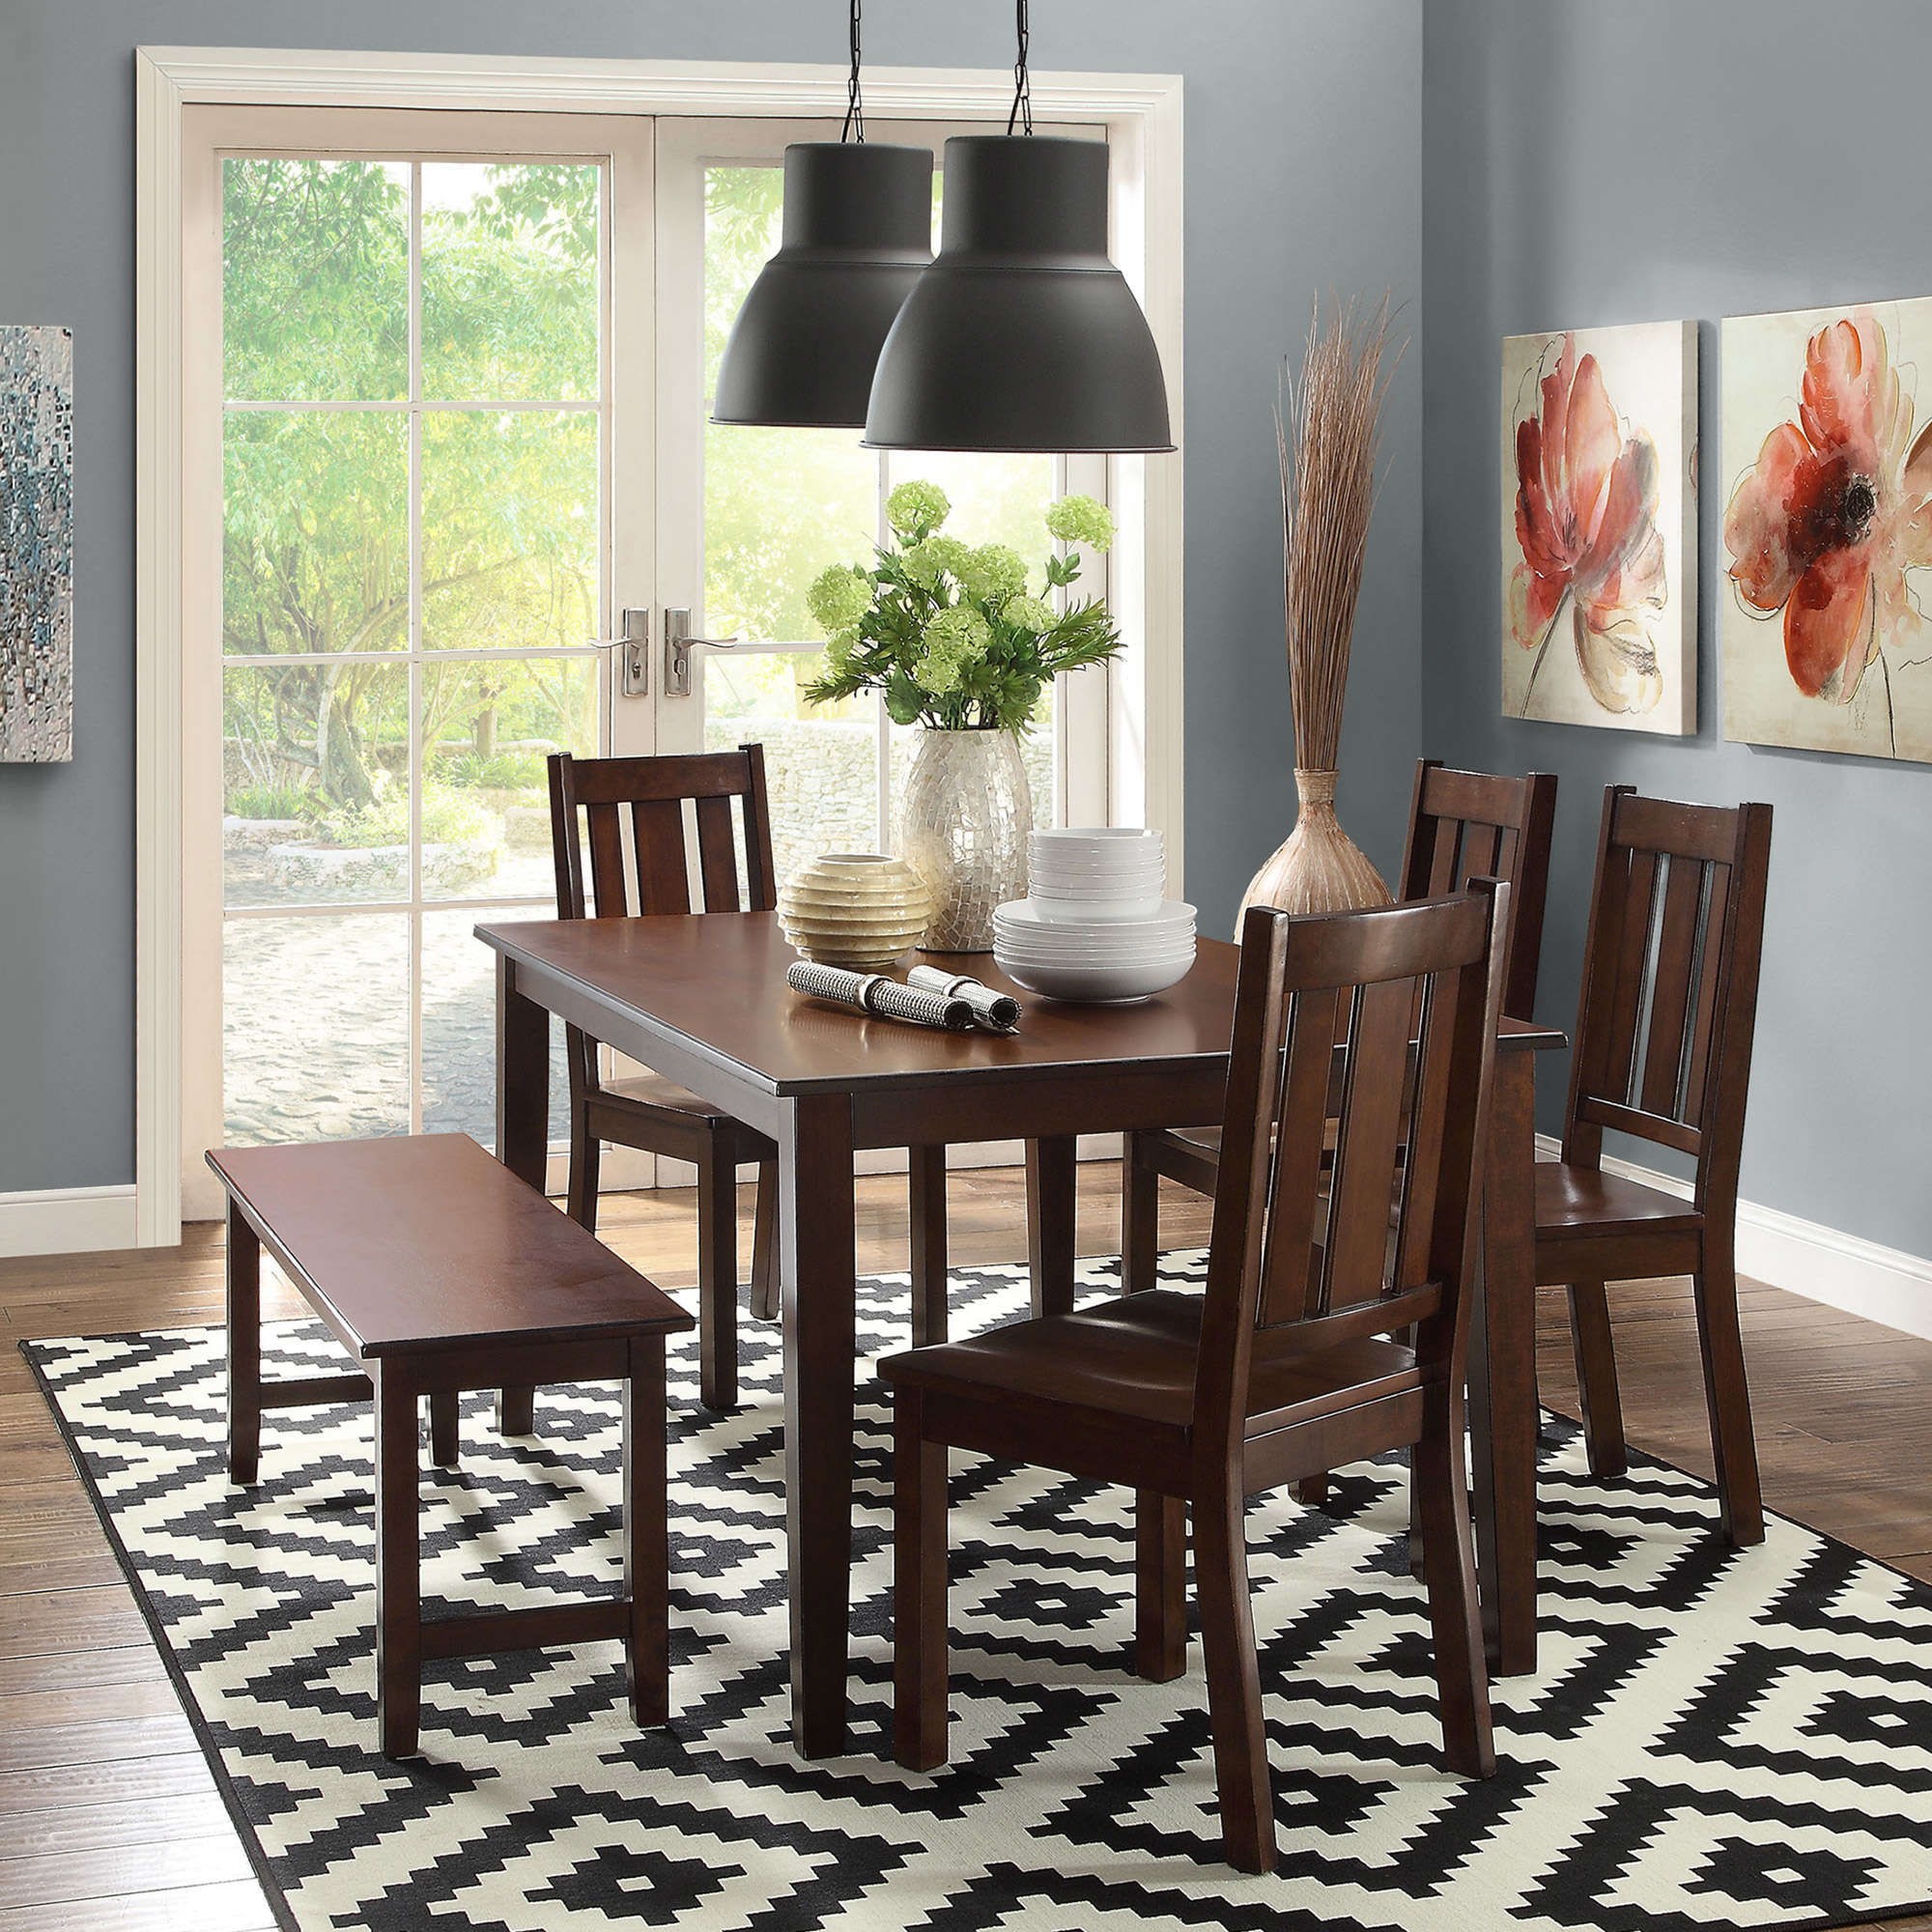 6 piece dining room set wood table 4 chairs bench solid wooden furniture dinner